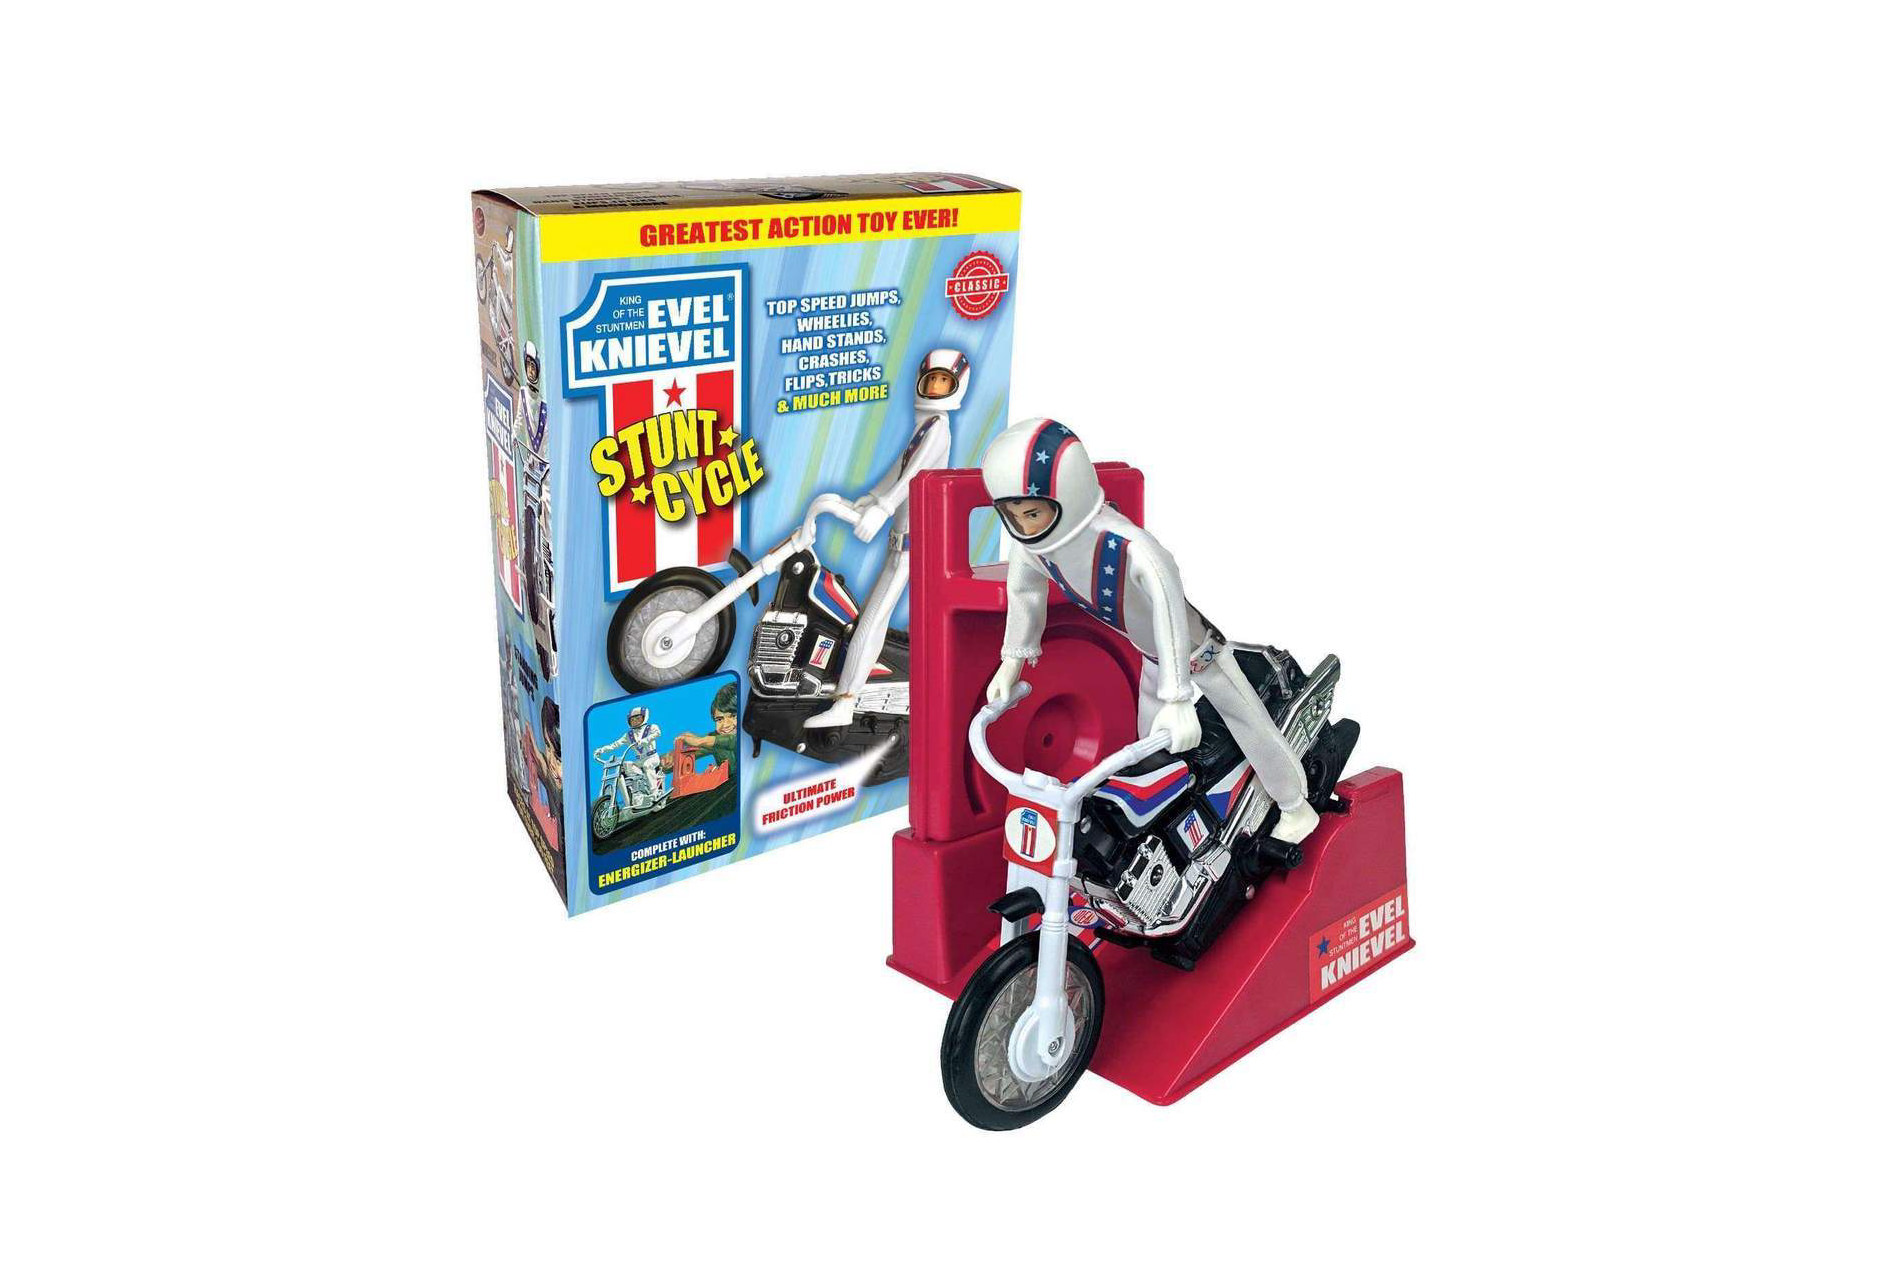 Evel Knievel Stunt Cycle Toy